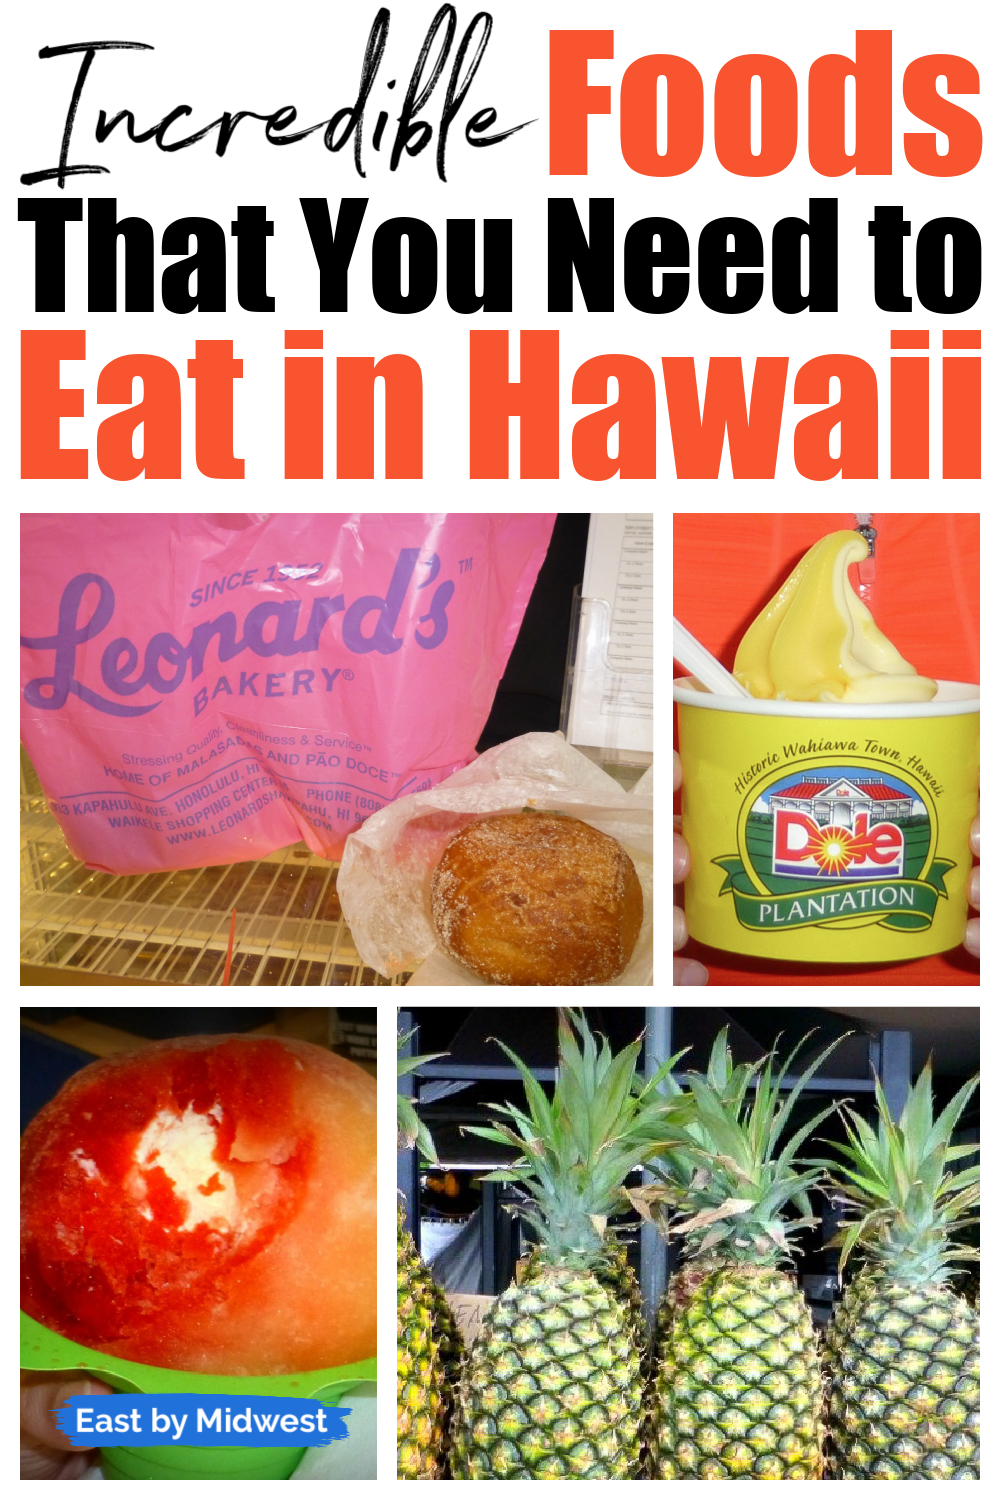 5 Incredible Foods That You Need to Eat in Hawaii